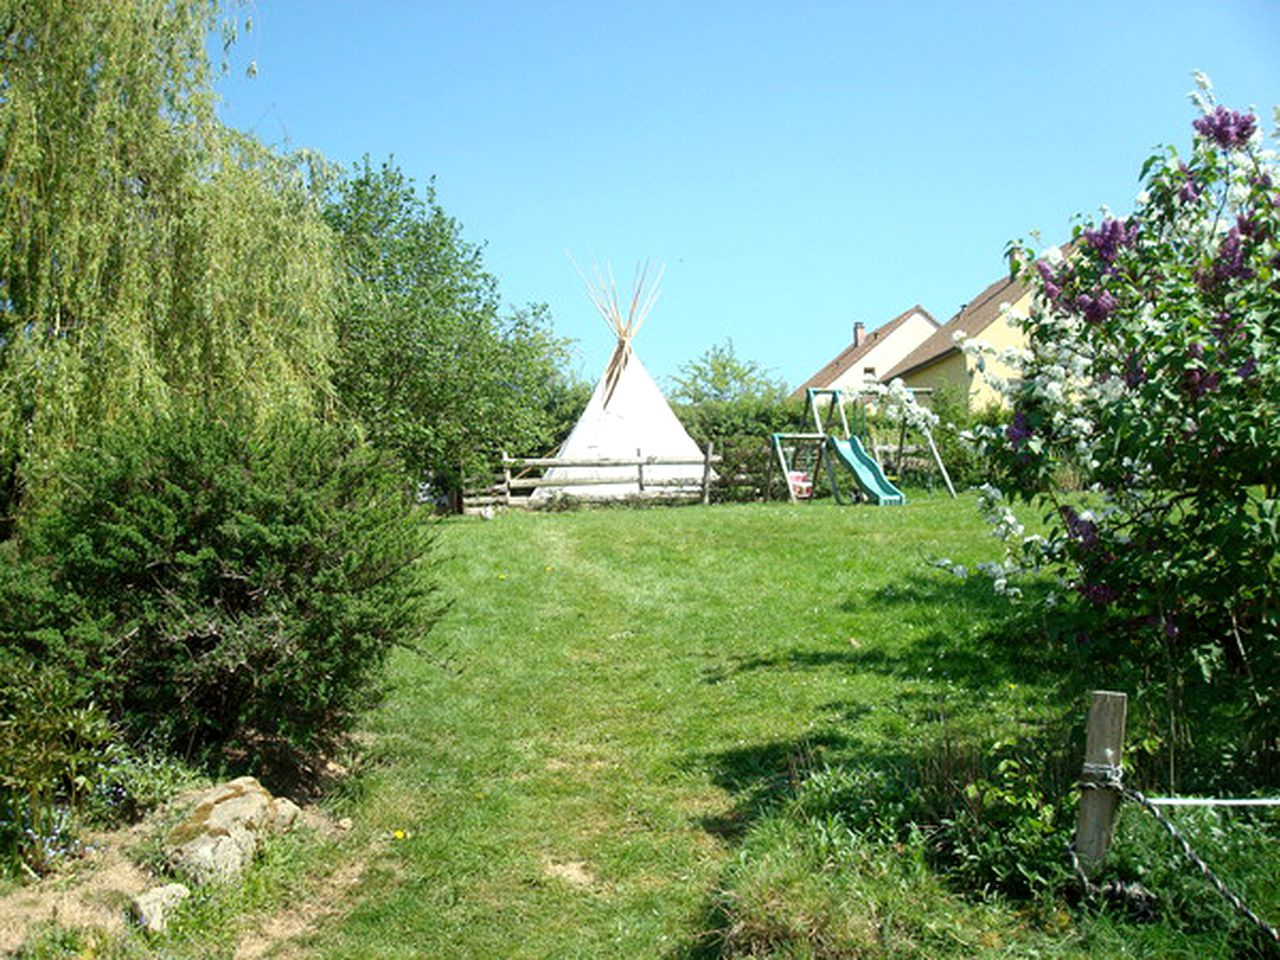 Tipis (La Crique, Normandy, France)